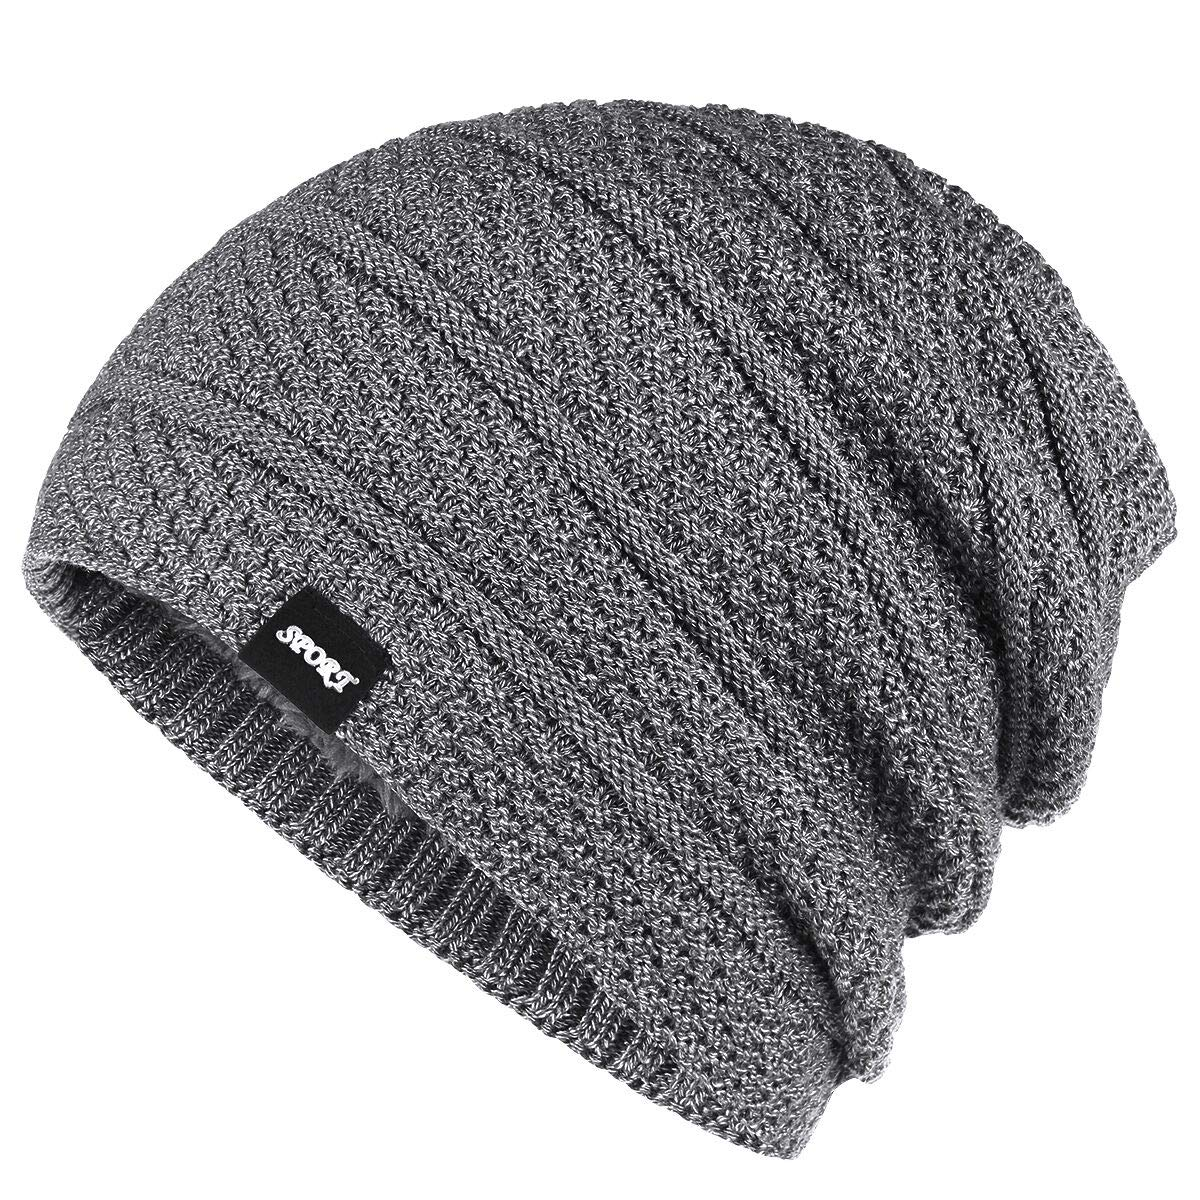 c2d93f57 Bodvera Winter Knit Wool Warm Hat Thick Soft Stretch Slouchy Beanie Skully  Cap Navy product image